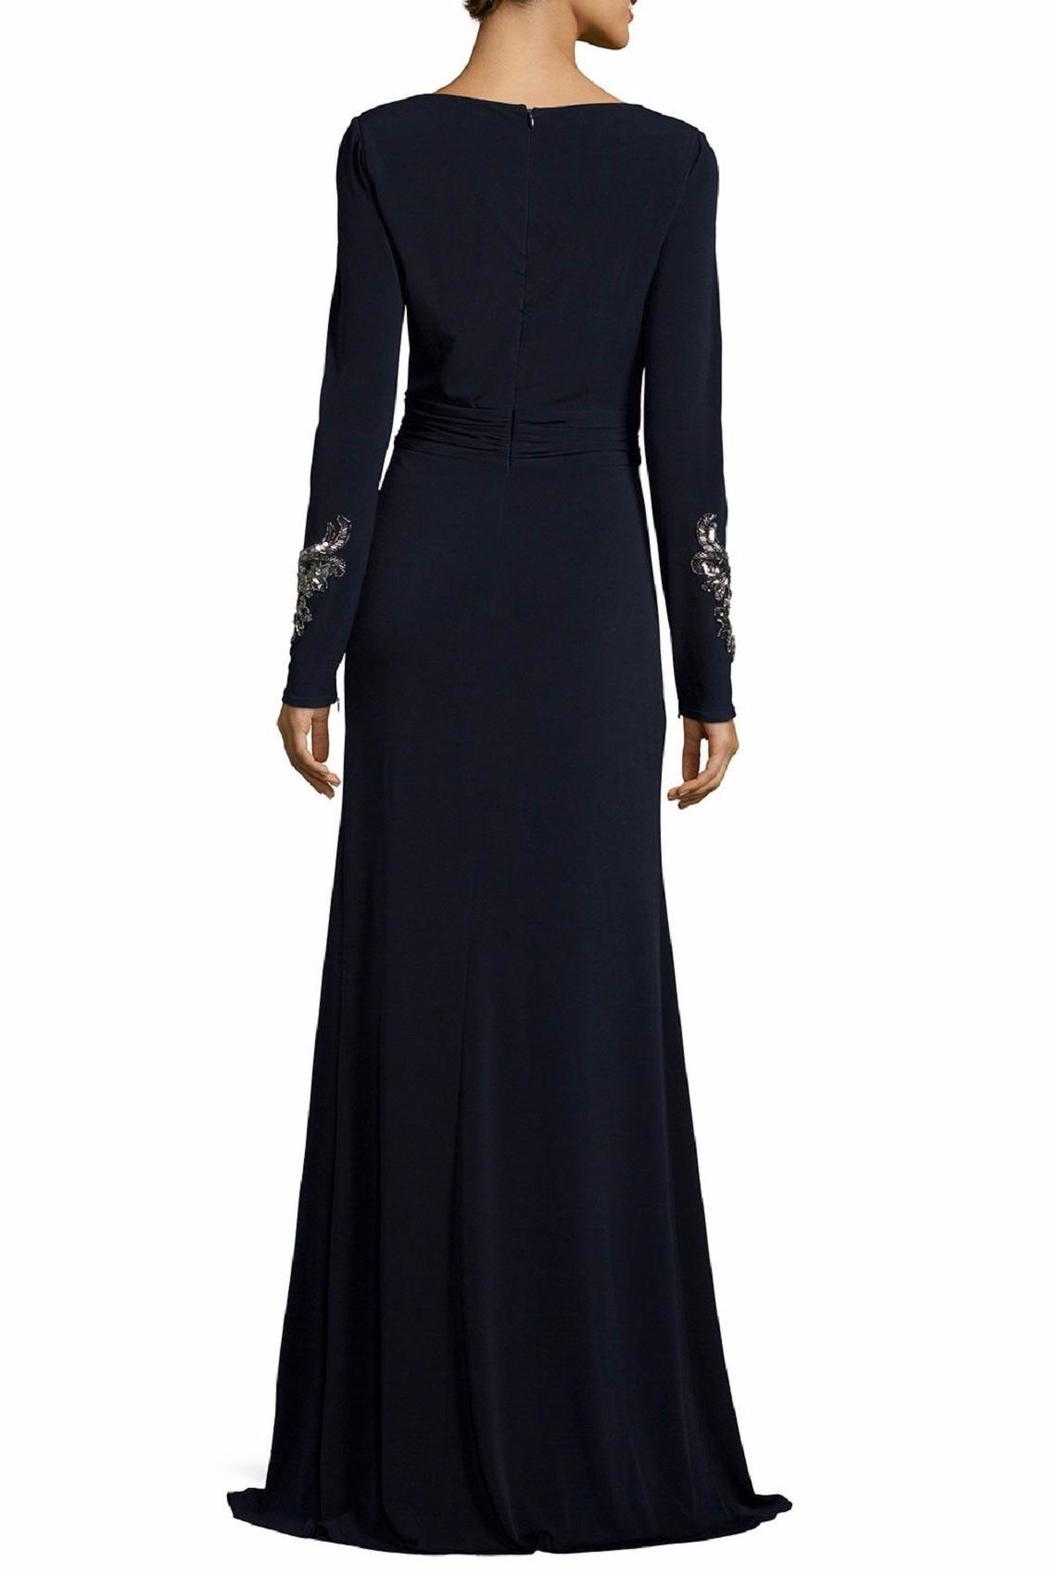 David Meister Long Sleeve Gown - Front Full Image